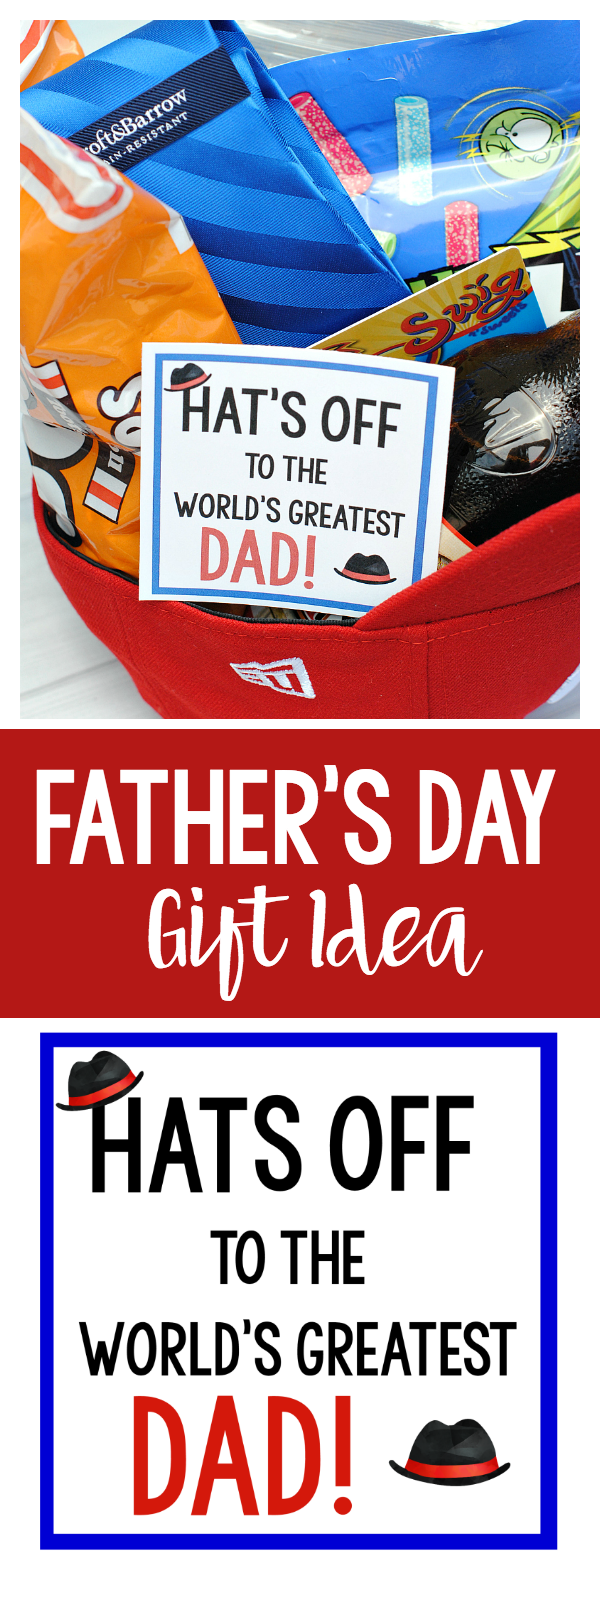 Fun & Creative Gift Idea for Dad for Father's Day